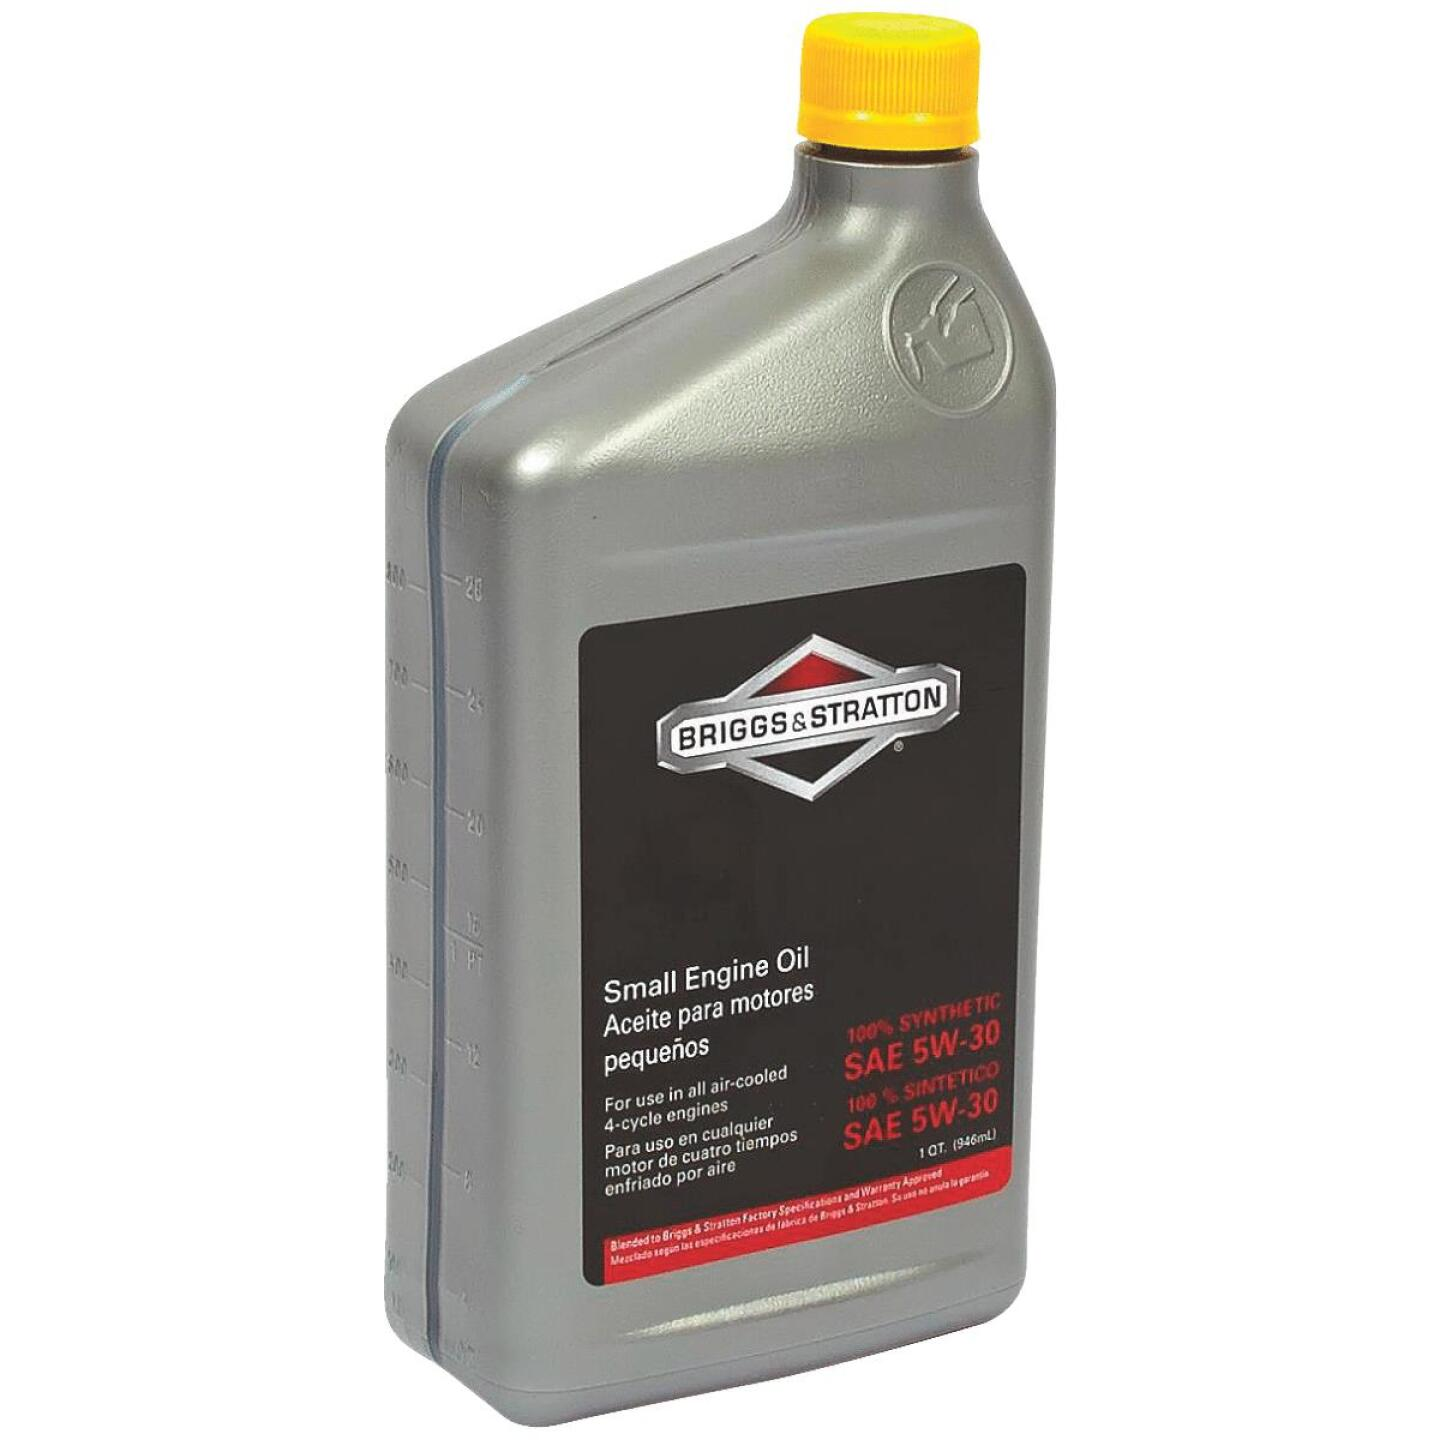 Briggs & Stratton 32 Oz. Synthetic 4-Cycle Motor Oil Image 1